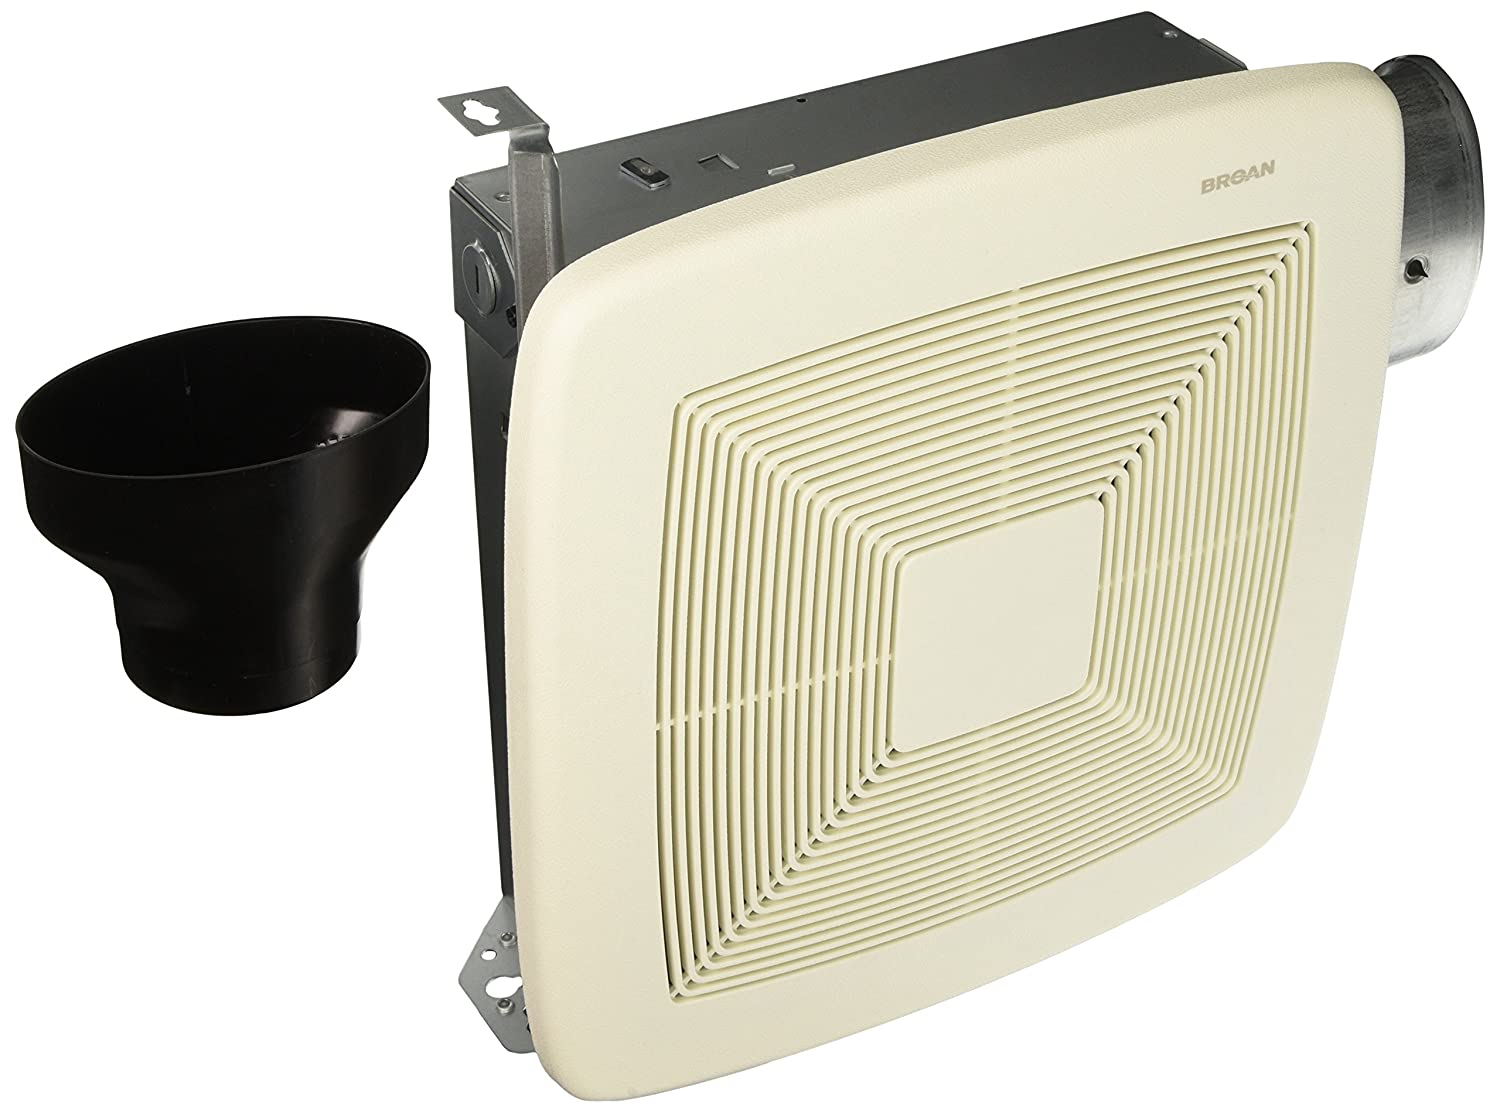 Broan-NutoneLP80LoProfile Ventilation Fan, Wall- or Ceiling-Mount Exhaust Fan for Bathroom and Home, 1.0 Sones, 80 CFM